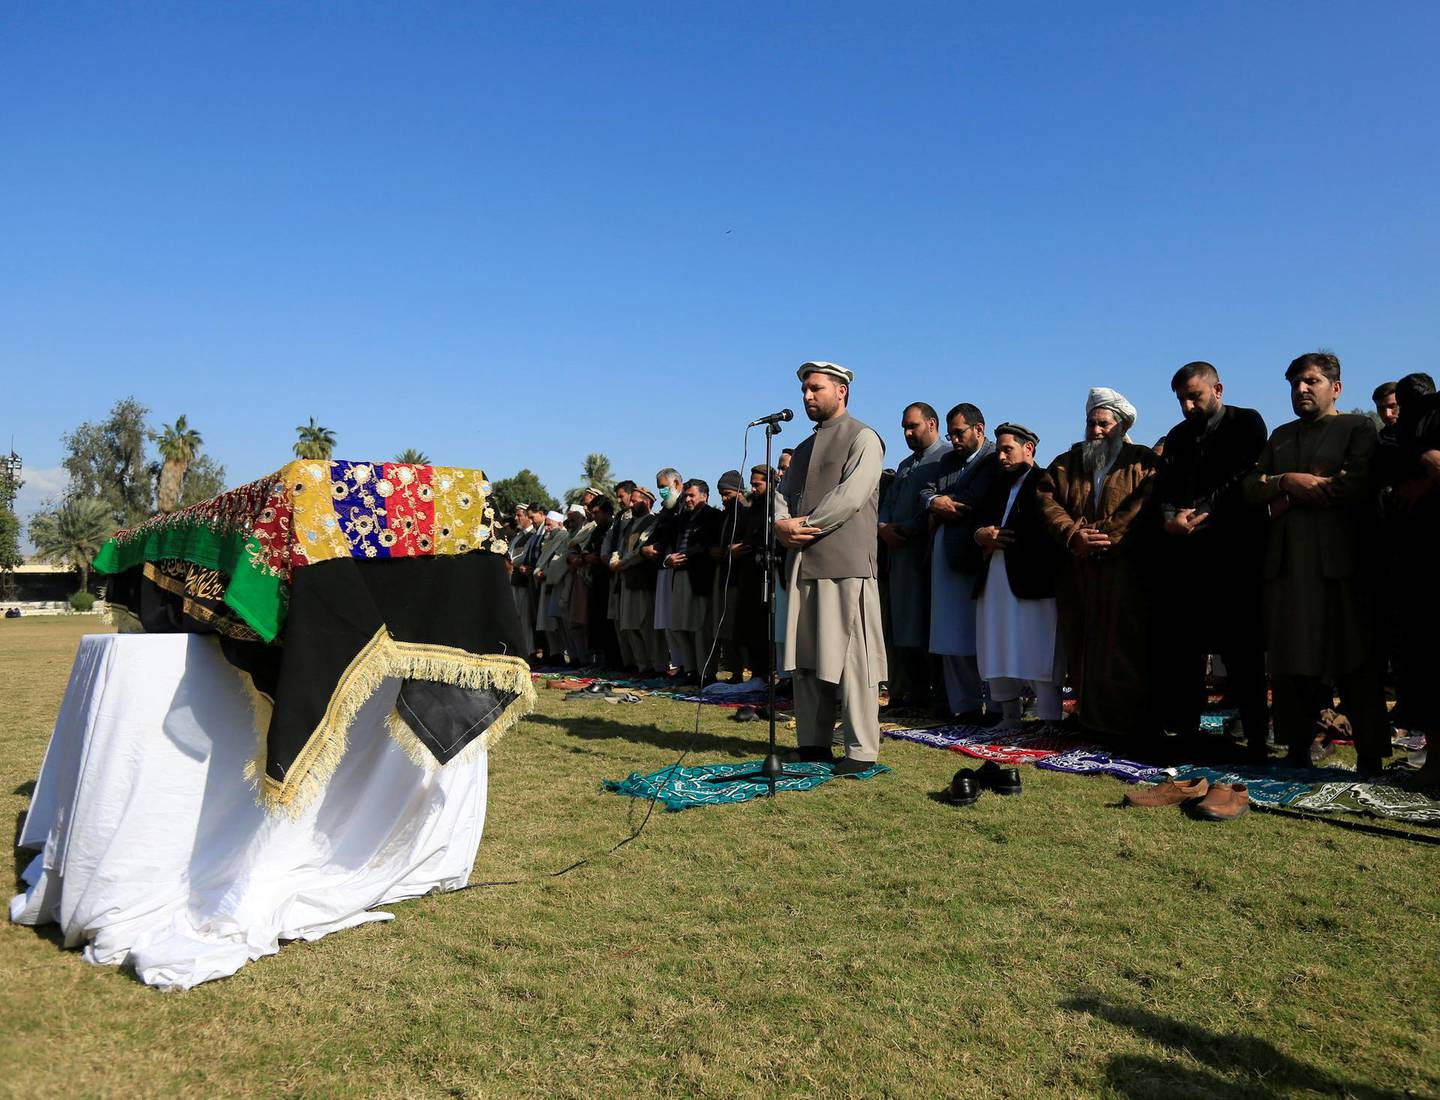 Afghan men pray near the coffin of journalist Malalai Maiwand, who was shot and killed by unknown gunmen in Jalalabad, Afghanistan December 10, 2020. REUTERS/Parwiz